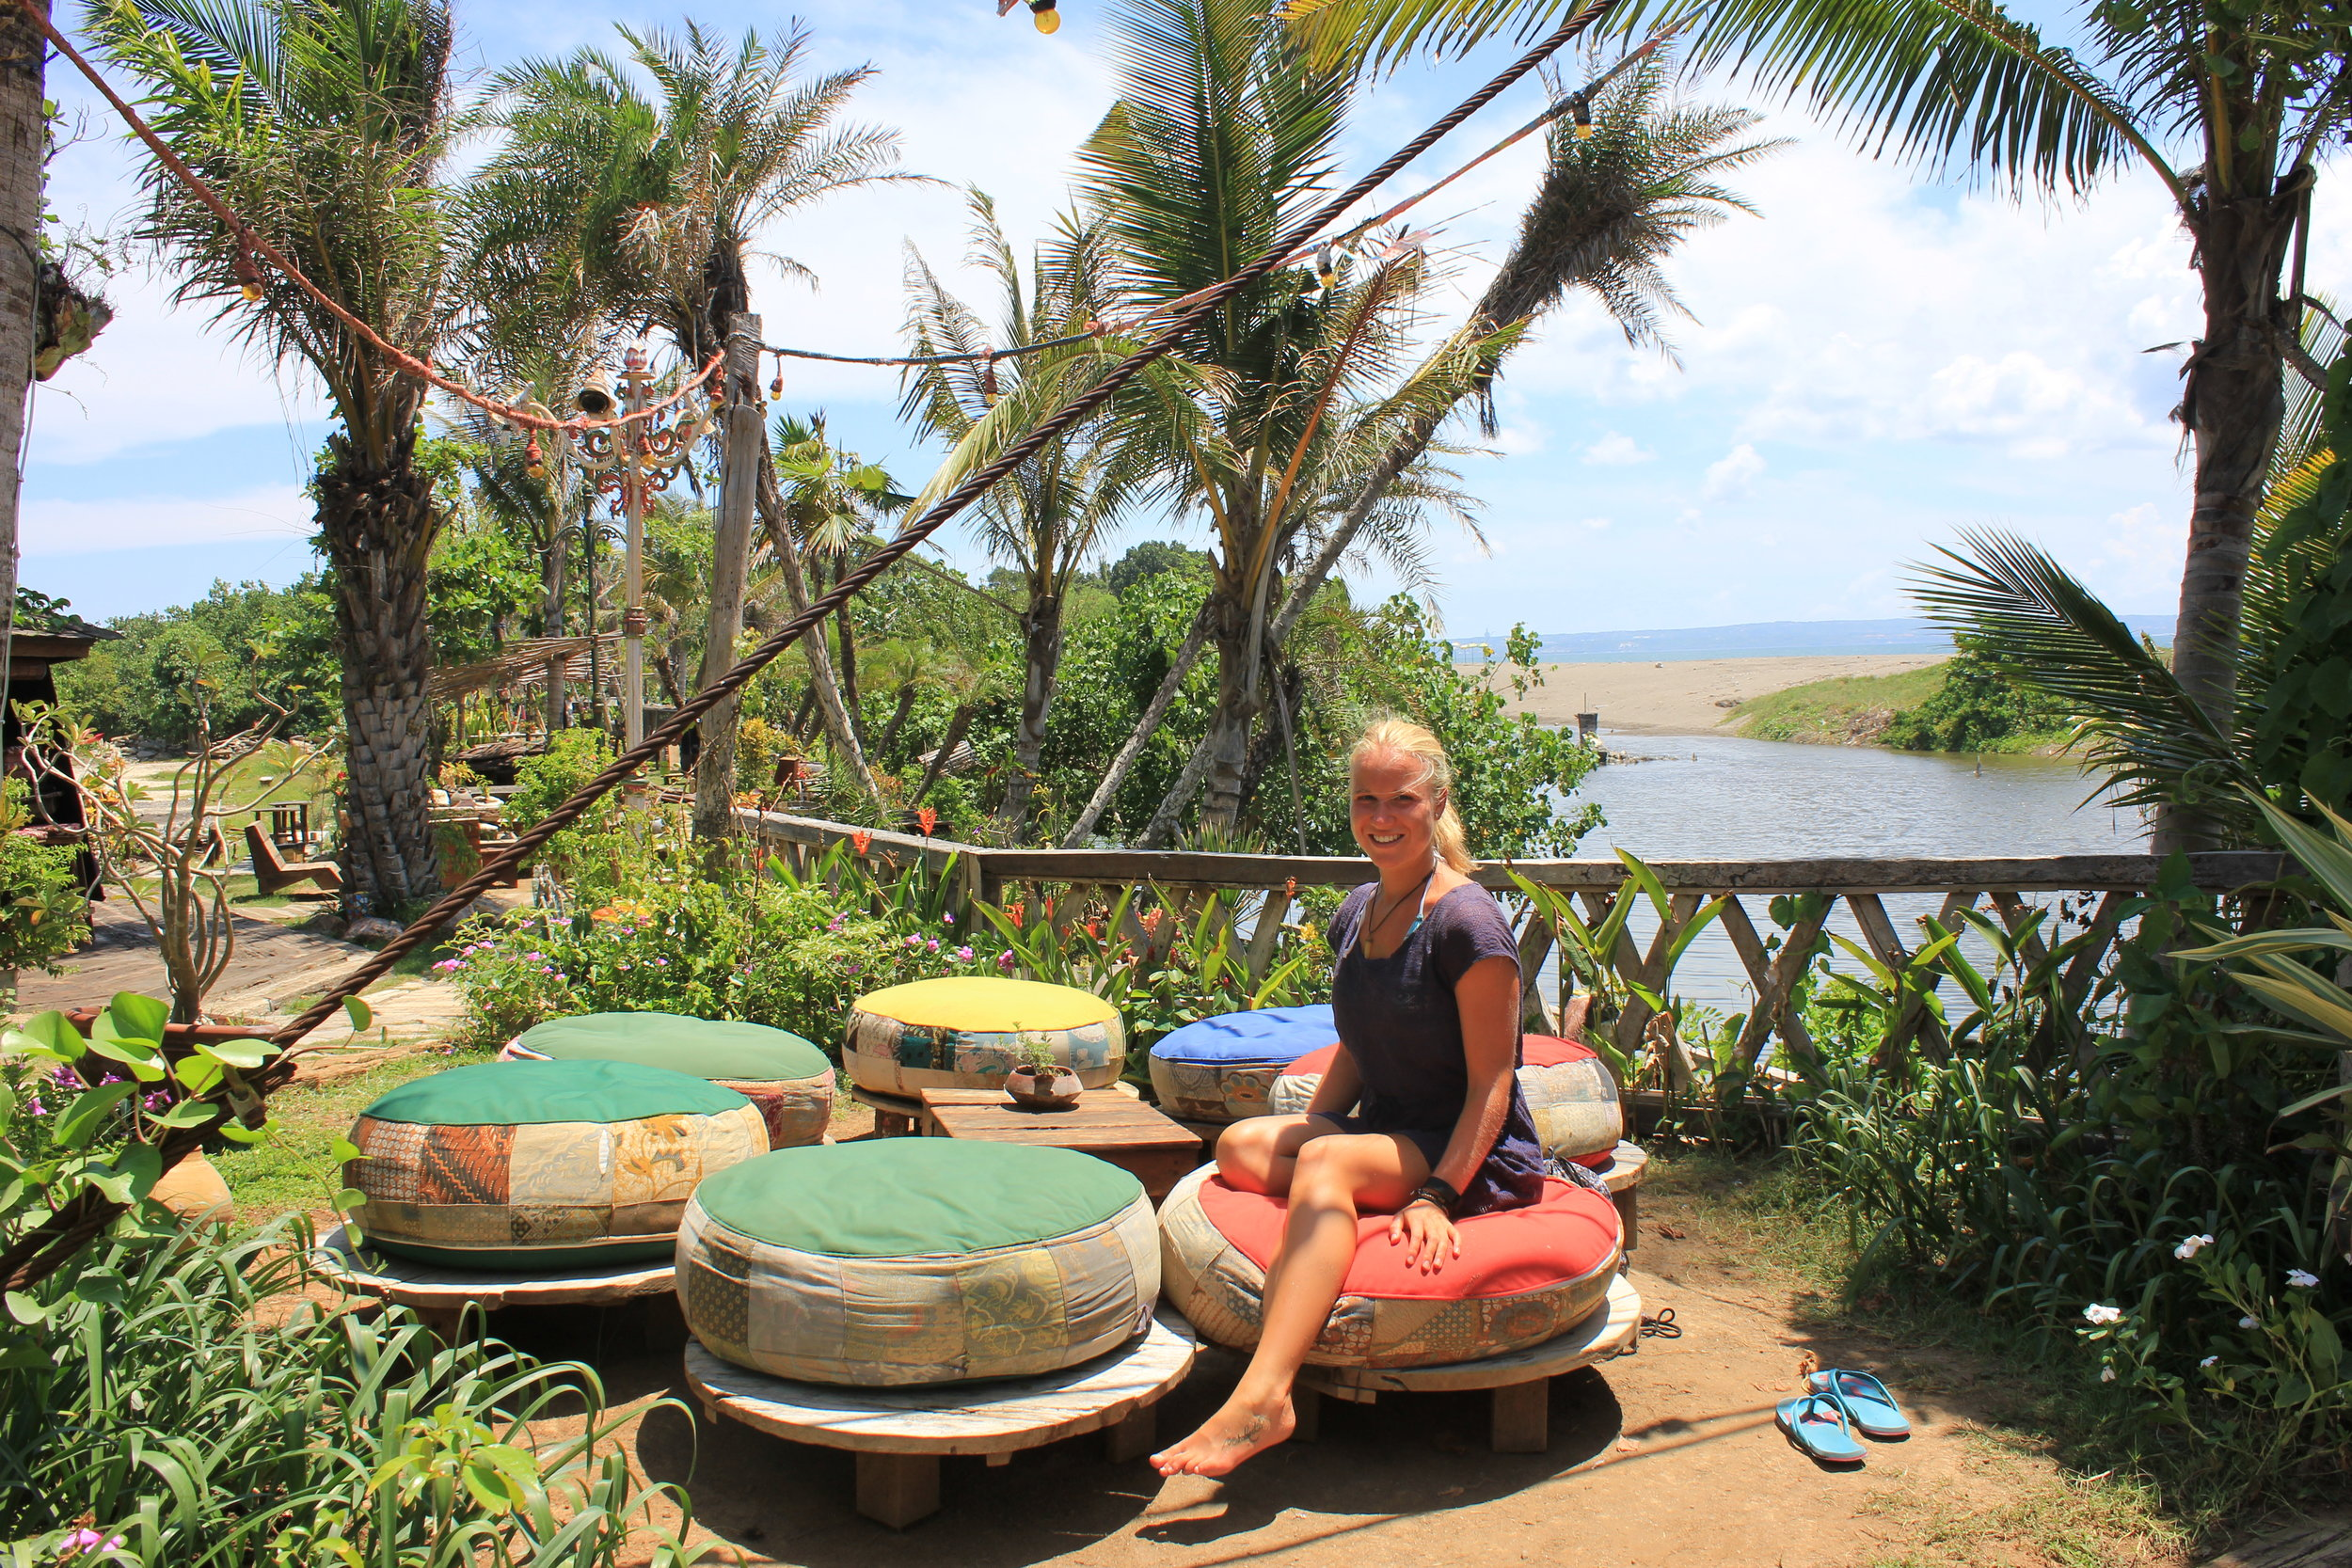 Fully Happy in Bali - Overcoming Body Image Issues Through Traveling